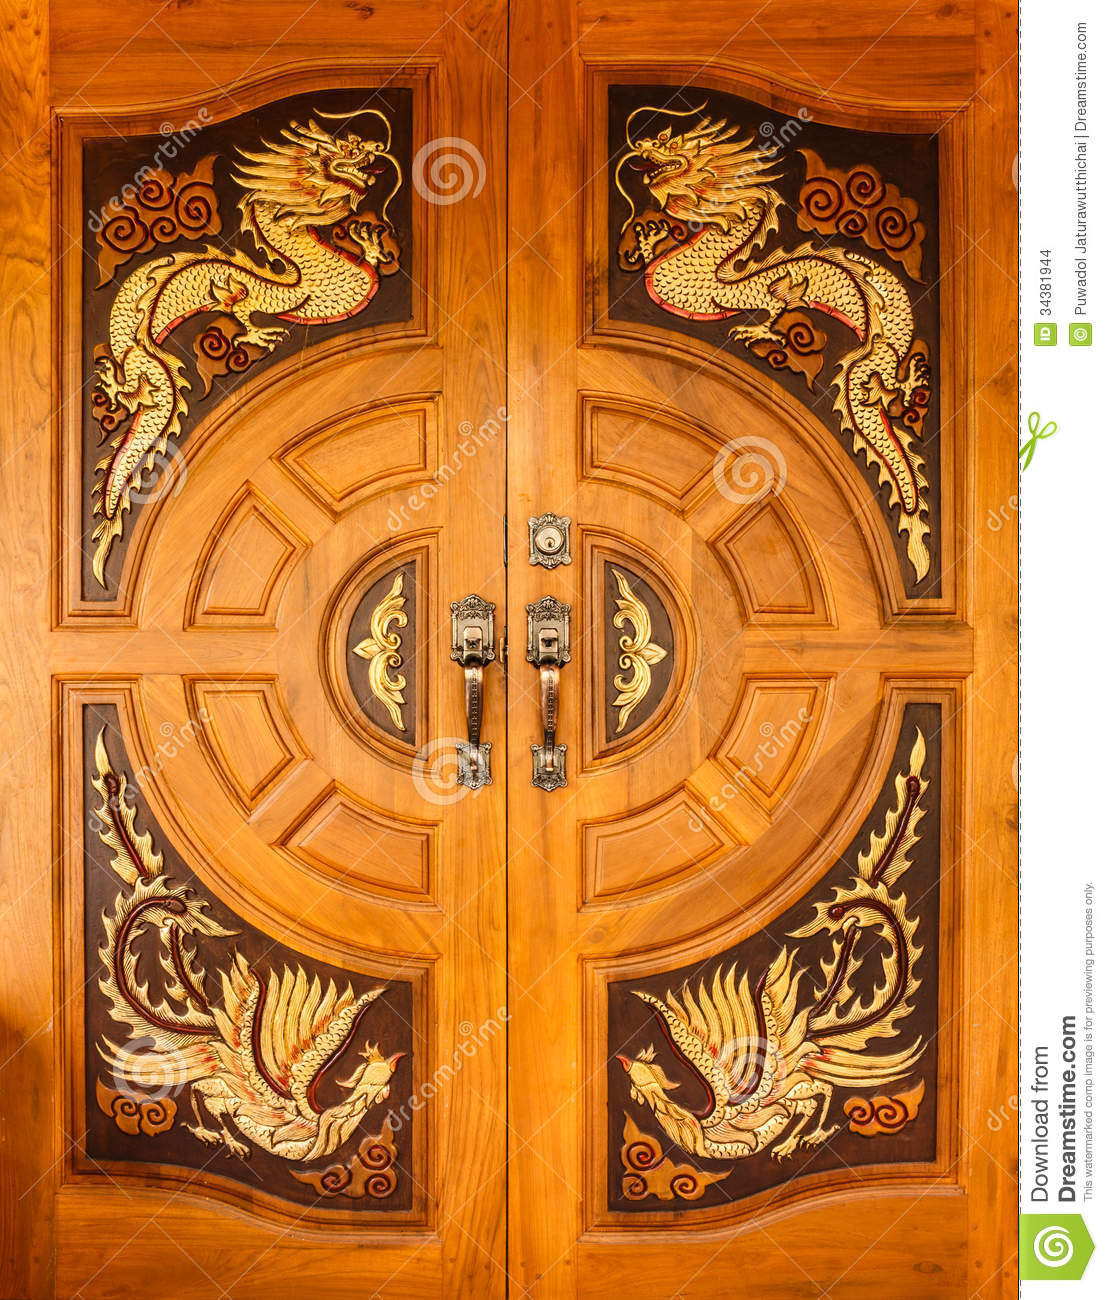 Wood door with dragons and swans design & Wood Door With Dragons And Swans Design Stock Photo - Image of ...